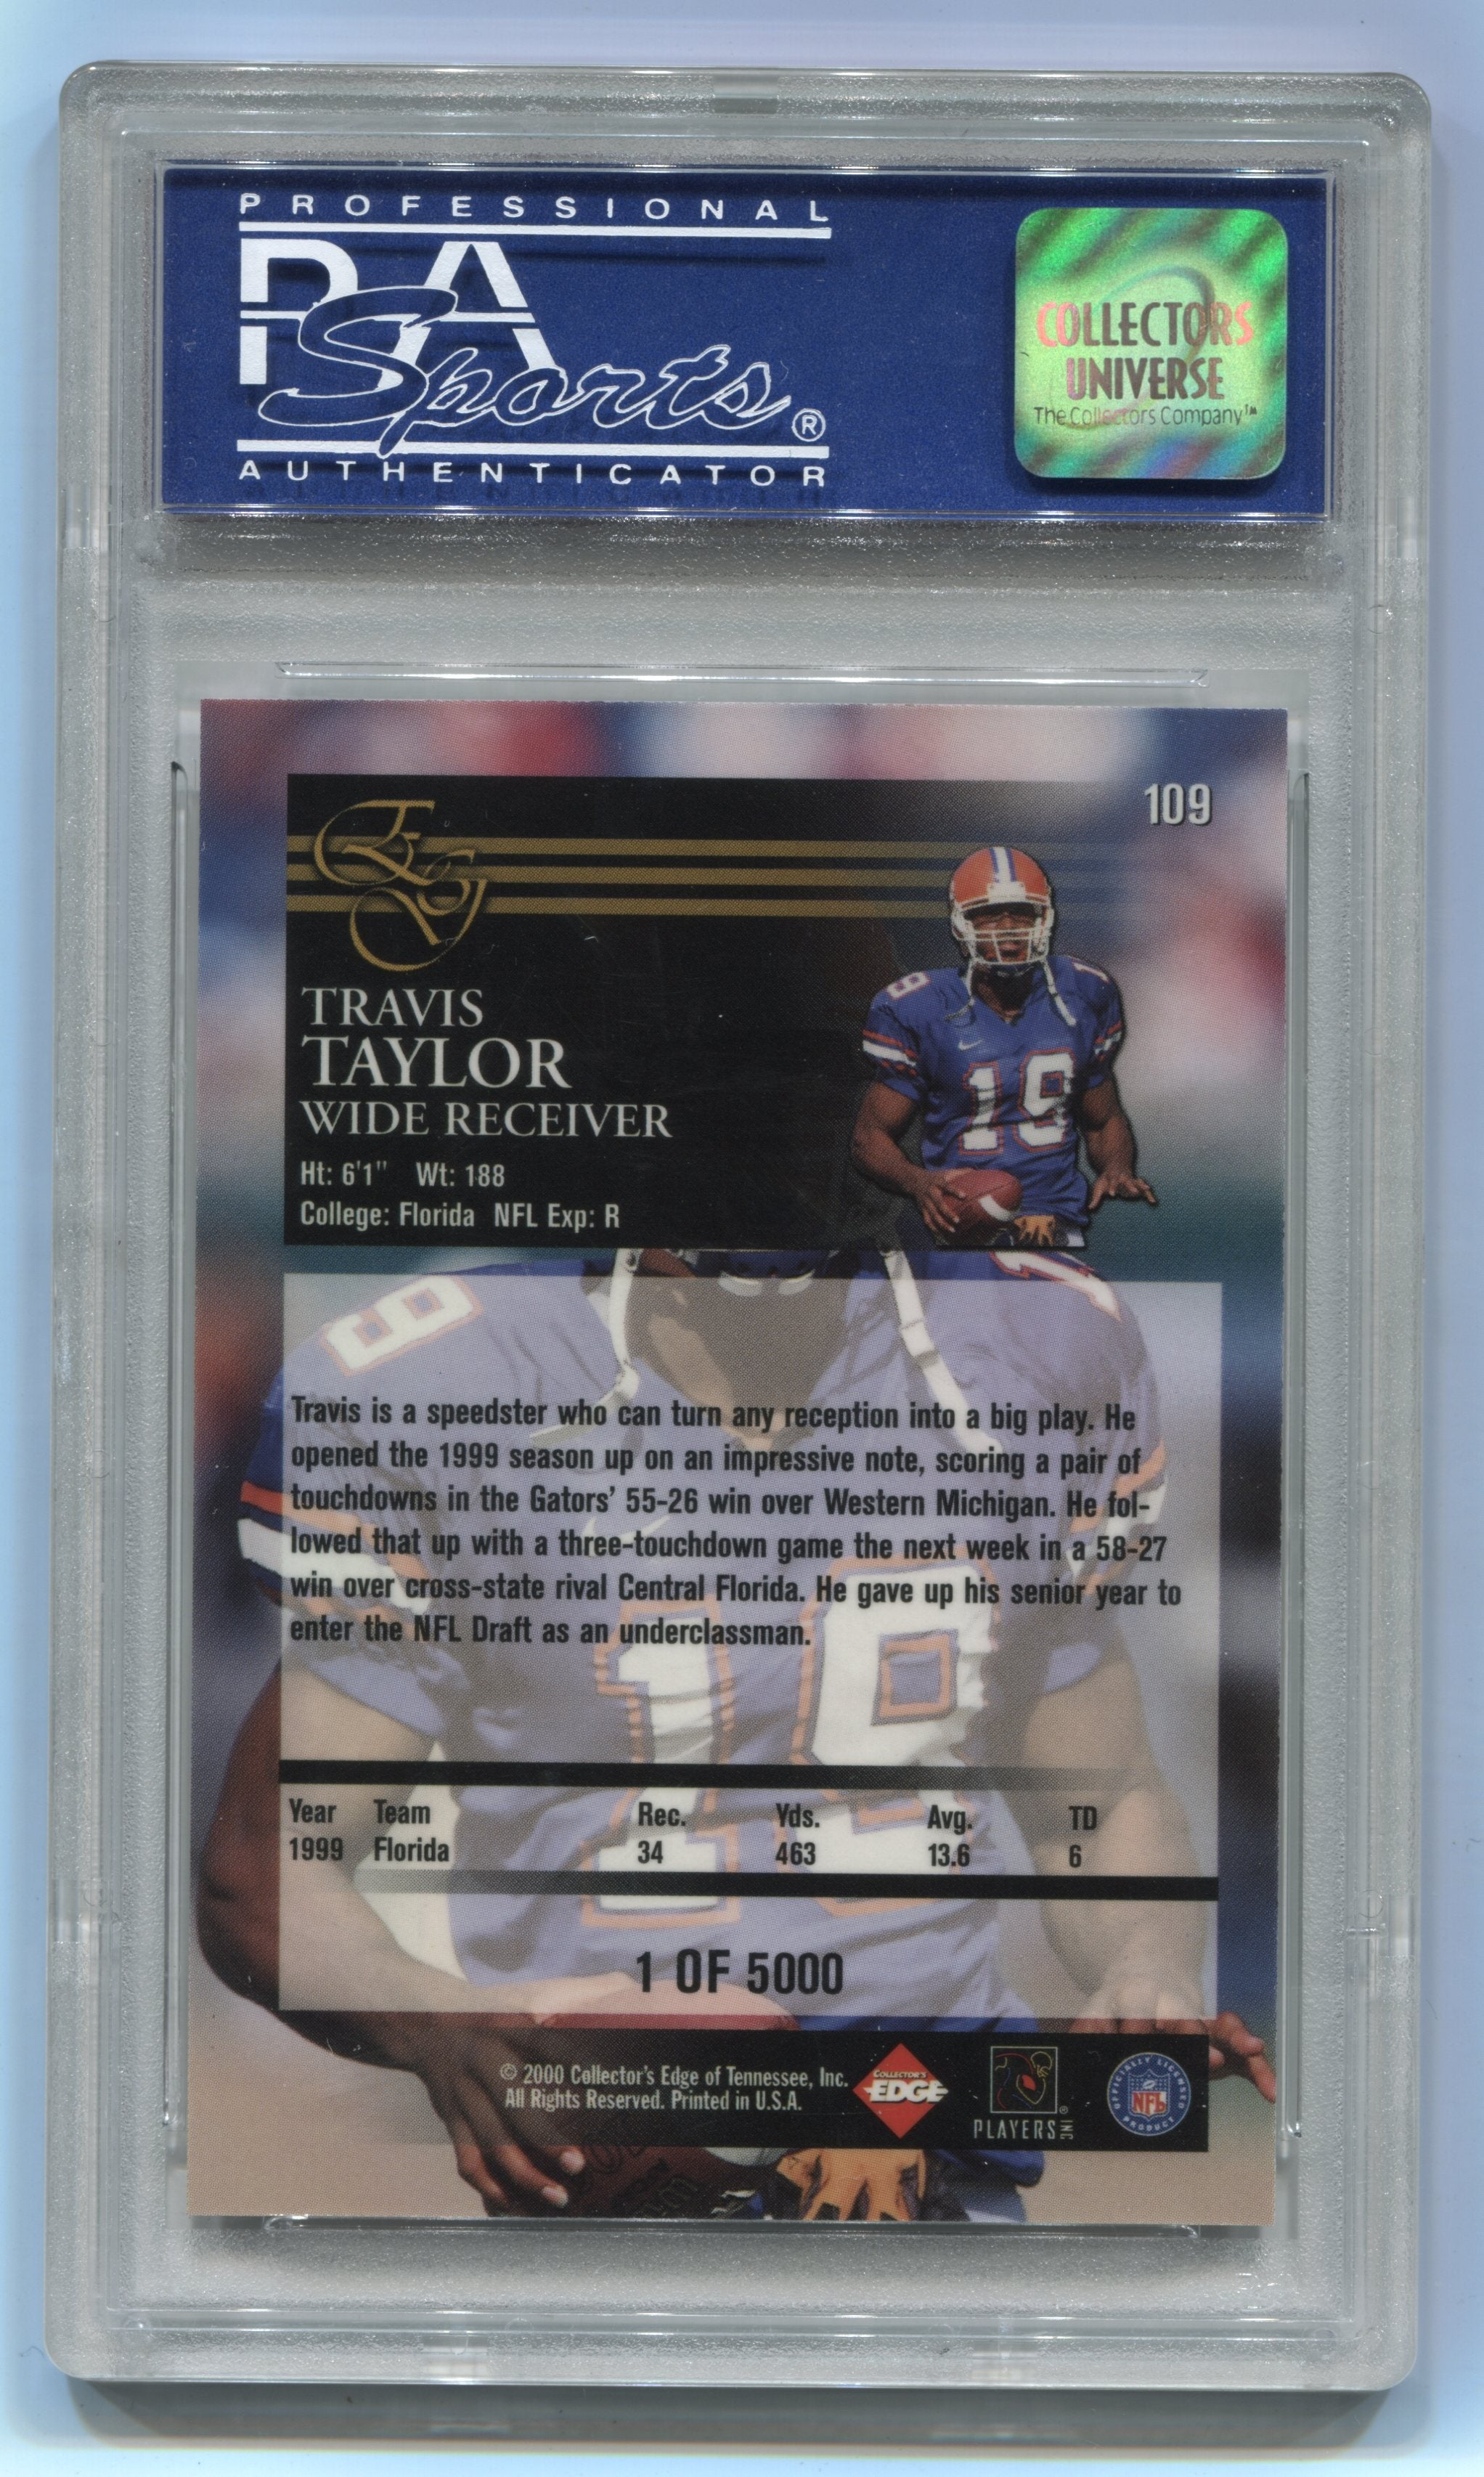 2000 Collector's Edge EG Uncirculated #109 Travis Taylor PSA 9 (Rookie) | Eastridge Sports Cards